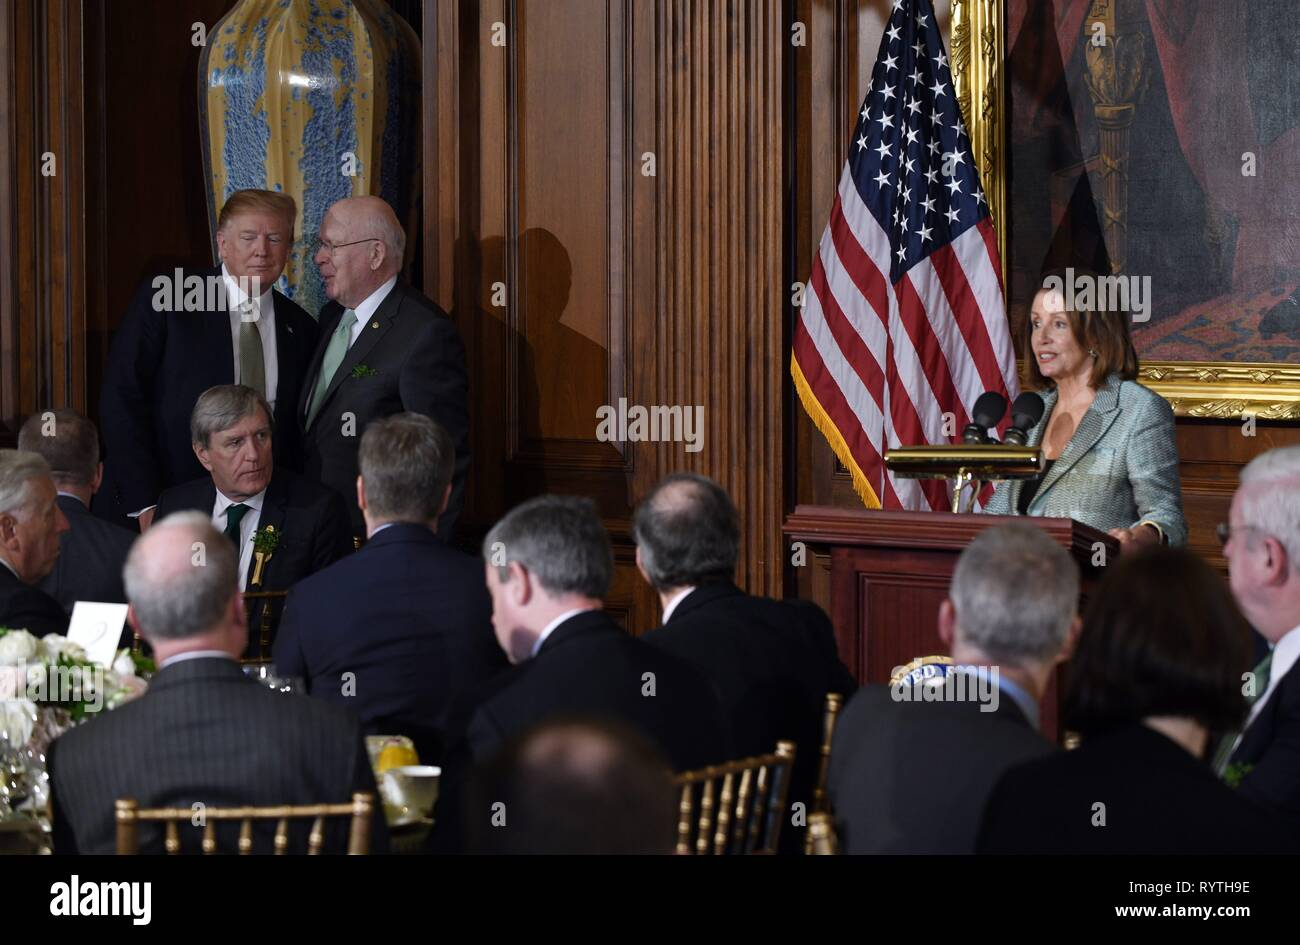 Washington, DC, USA. 14th Mar, 2019. United States President Donald J. Trump, left, and United States Senator Patrick Leahy (Democrat of Vermont), second left, listen to Speaker of the US House of Representatives Nancy Pelosi (Democrat of California), right, as she makes remarks during the Friends of Ireland luncheon with Leo Varadkar, Ireland's prime minister at the U.S. Capitol in Washington, DC, U.S., on Thursday, March 14, 2019. Credit: Olivier Douliery/Pool via CNP | usage worldwide Credit: dpa/Alamy Live News Stock Photo